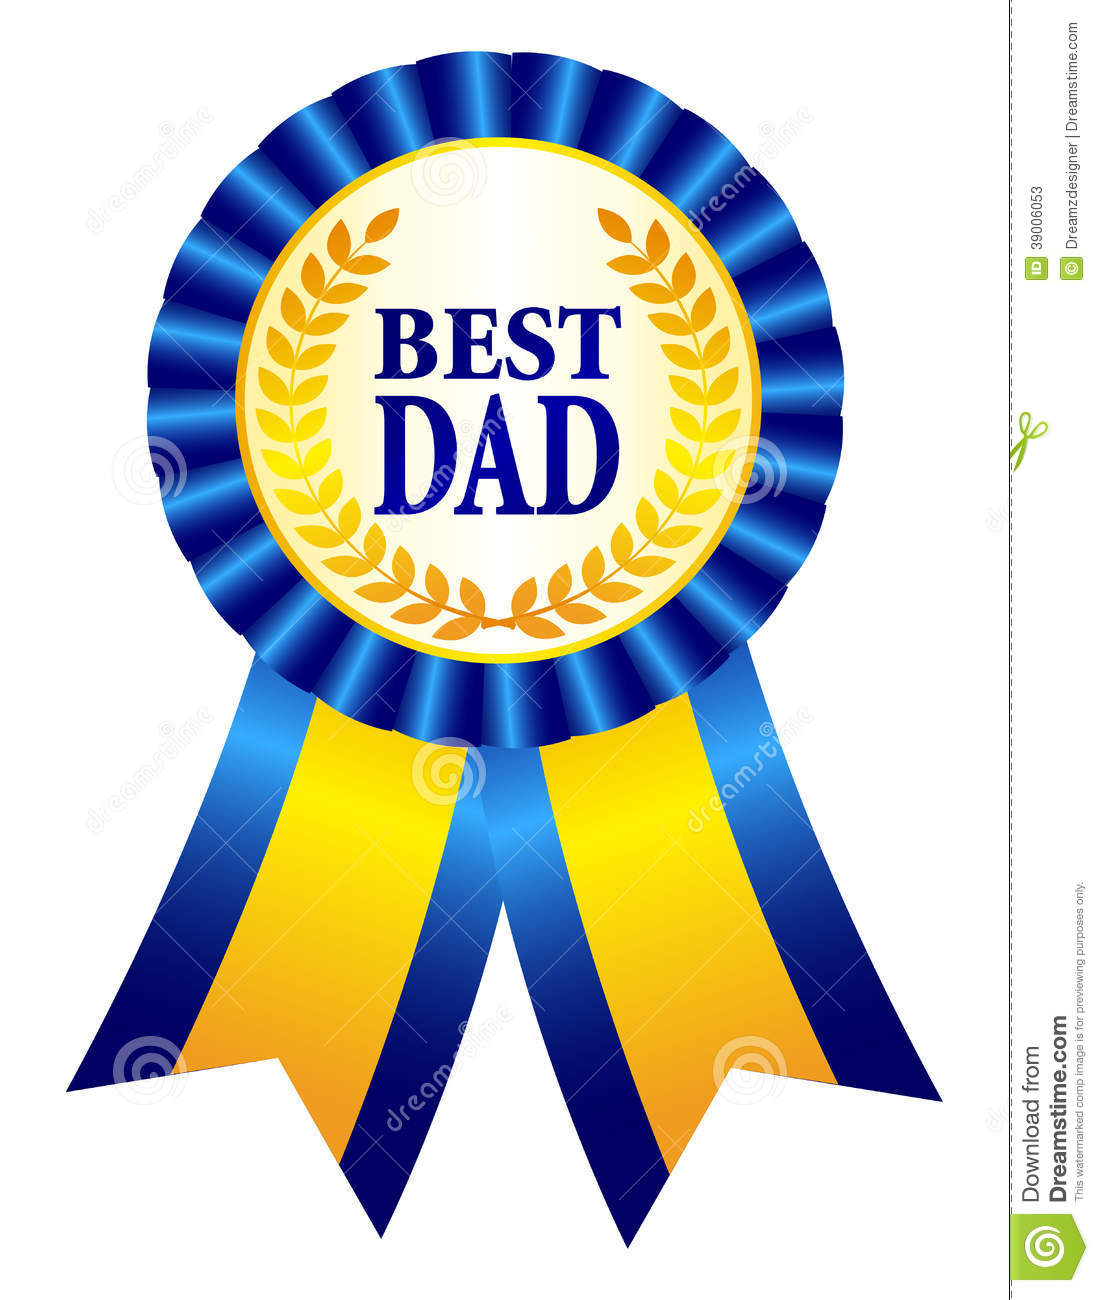 Best dad ribbon rosette. Laurel clipart years service awards svg royalty free stock